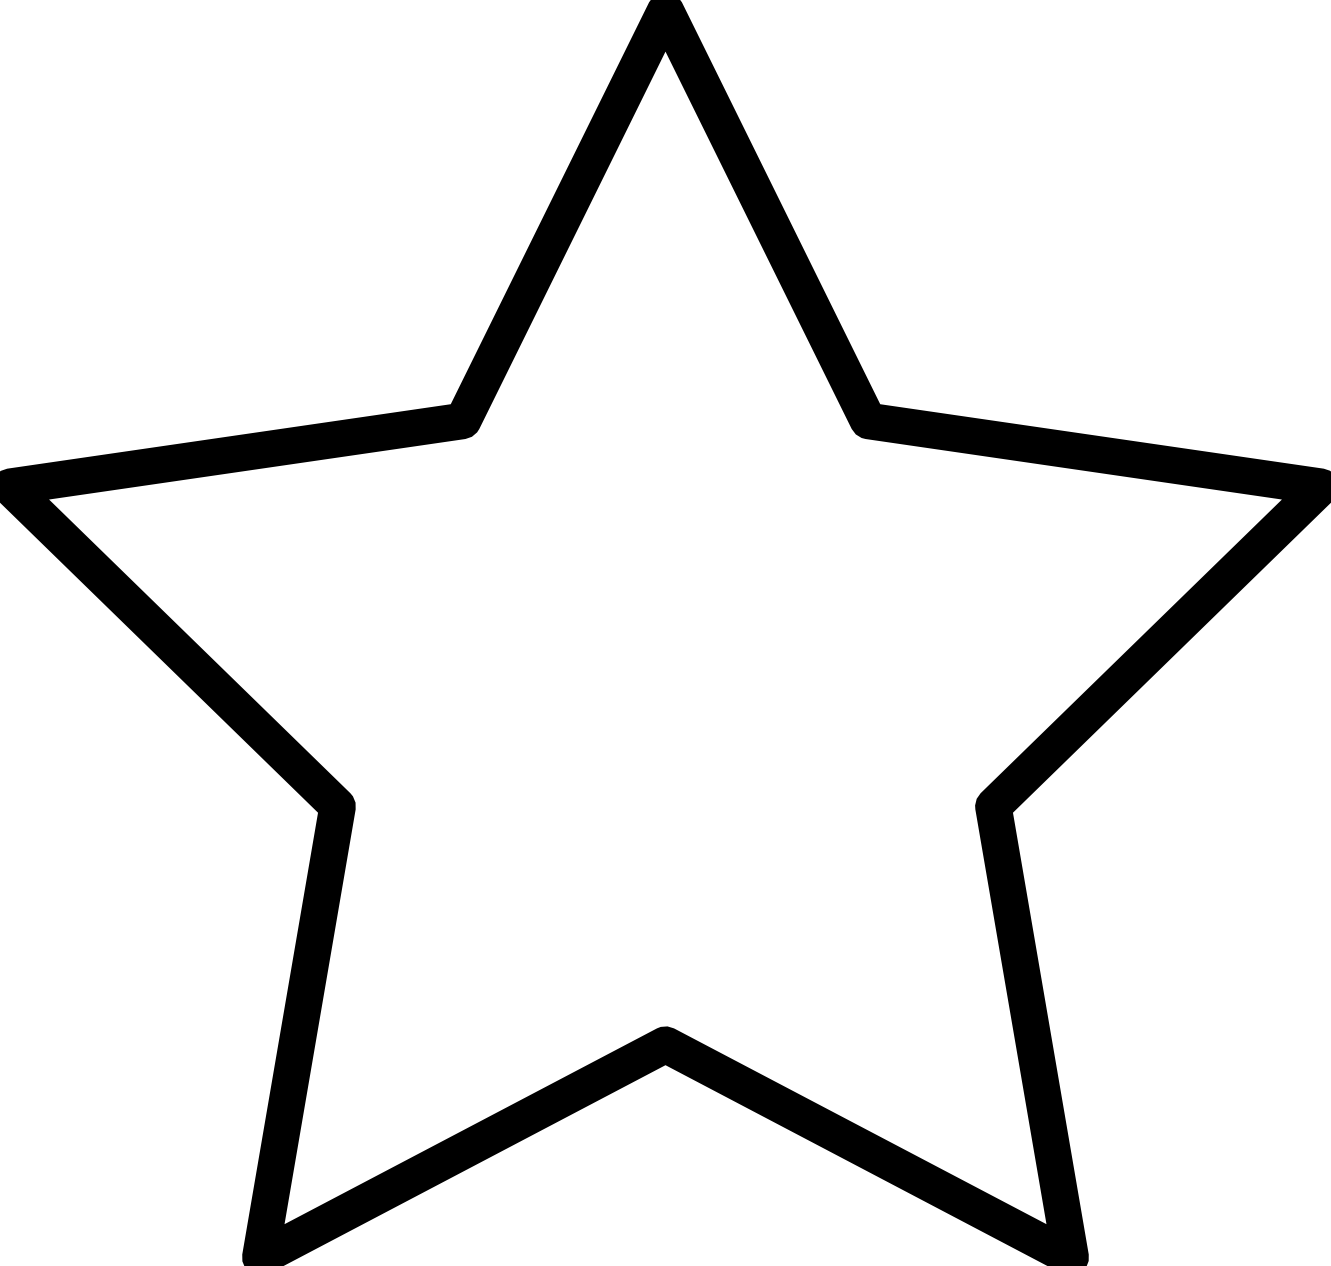 Clipart Of Stars Black And White.